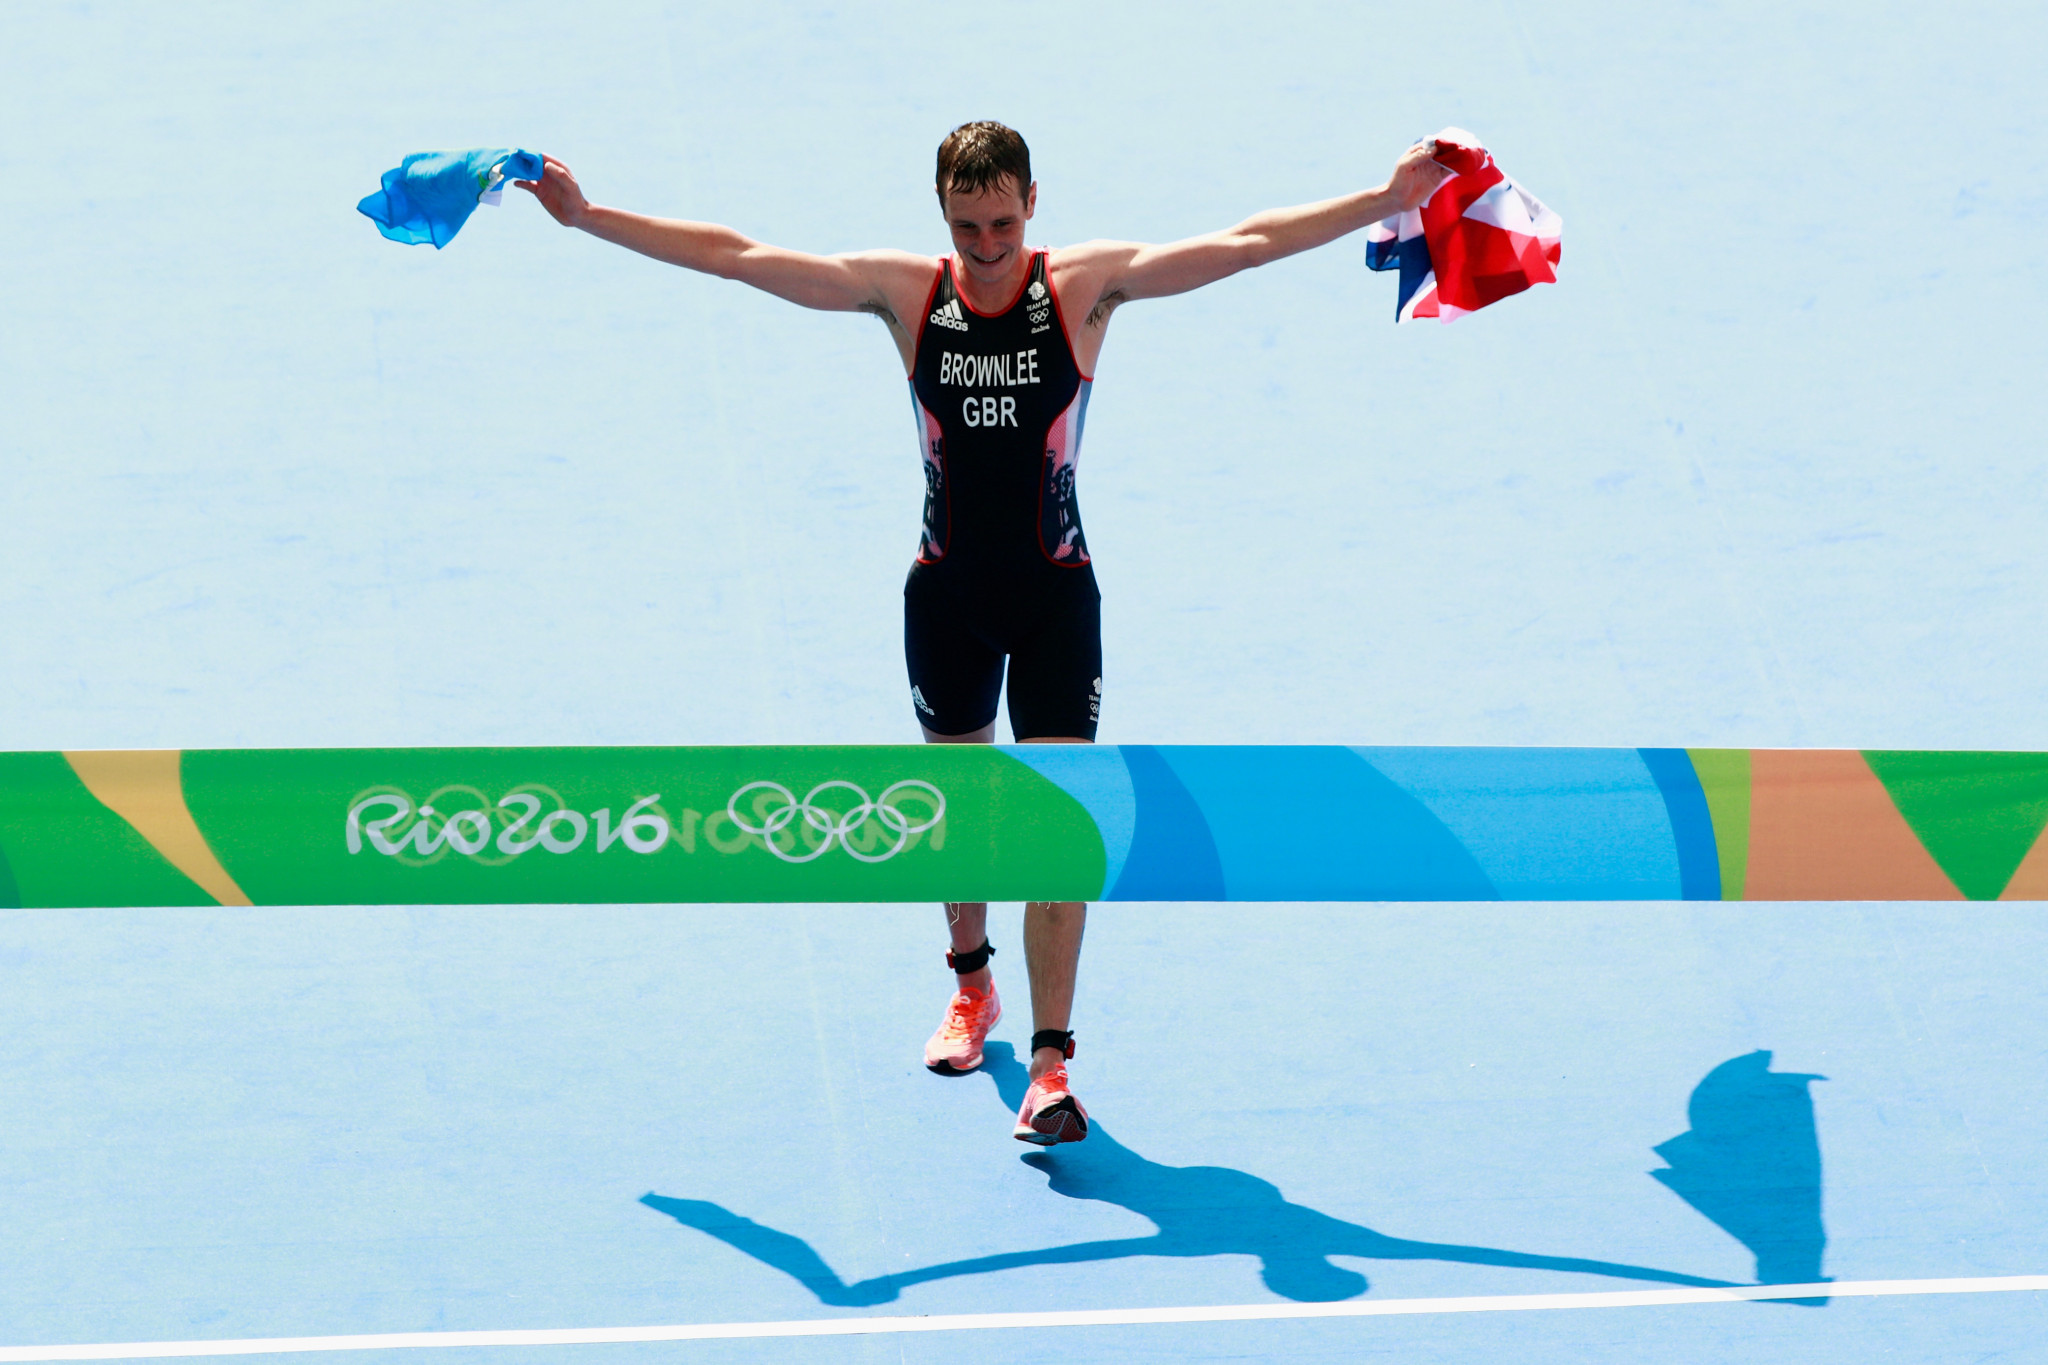 Alistair Brownlee has revealed he will try to compete at the Tokyo 2020 Olympic Games ©Getty Images